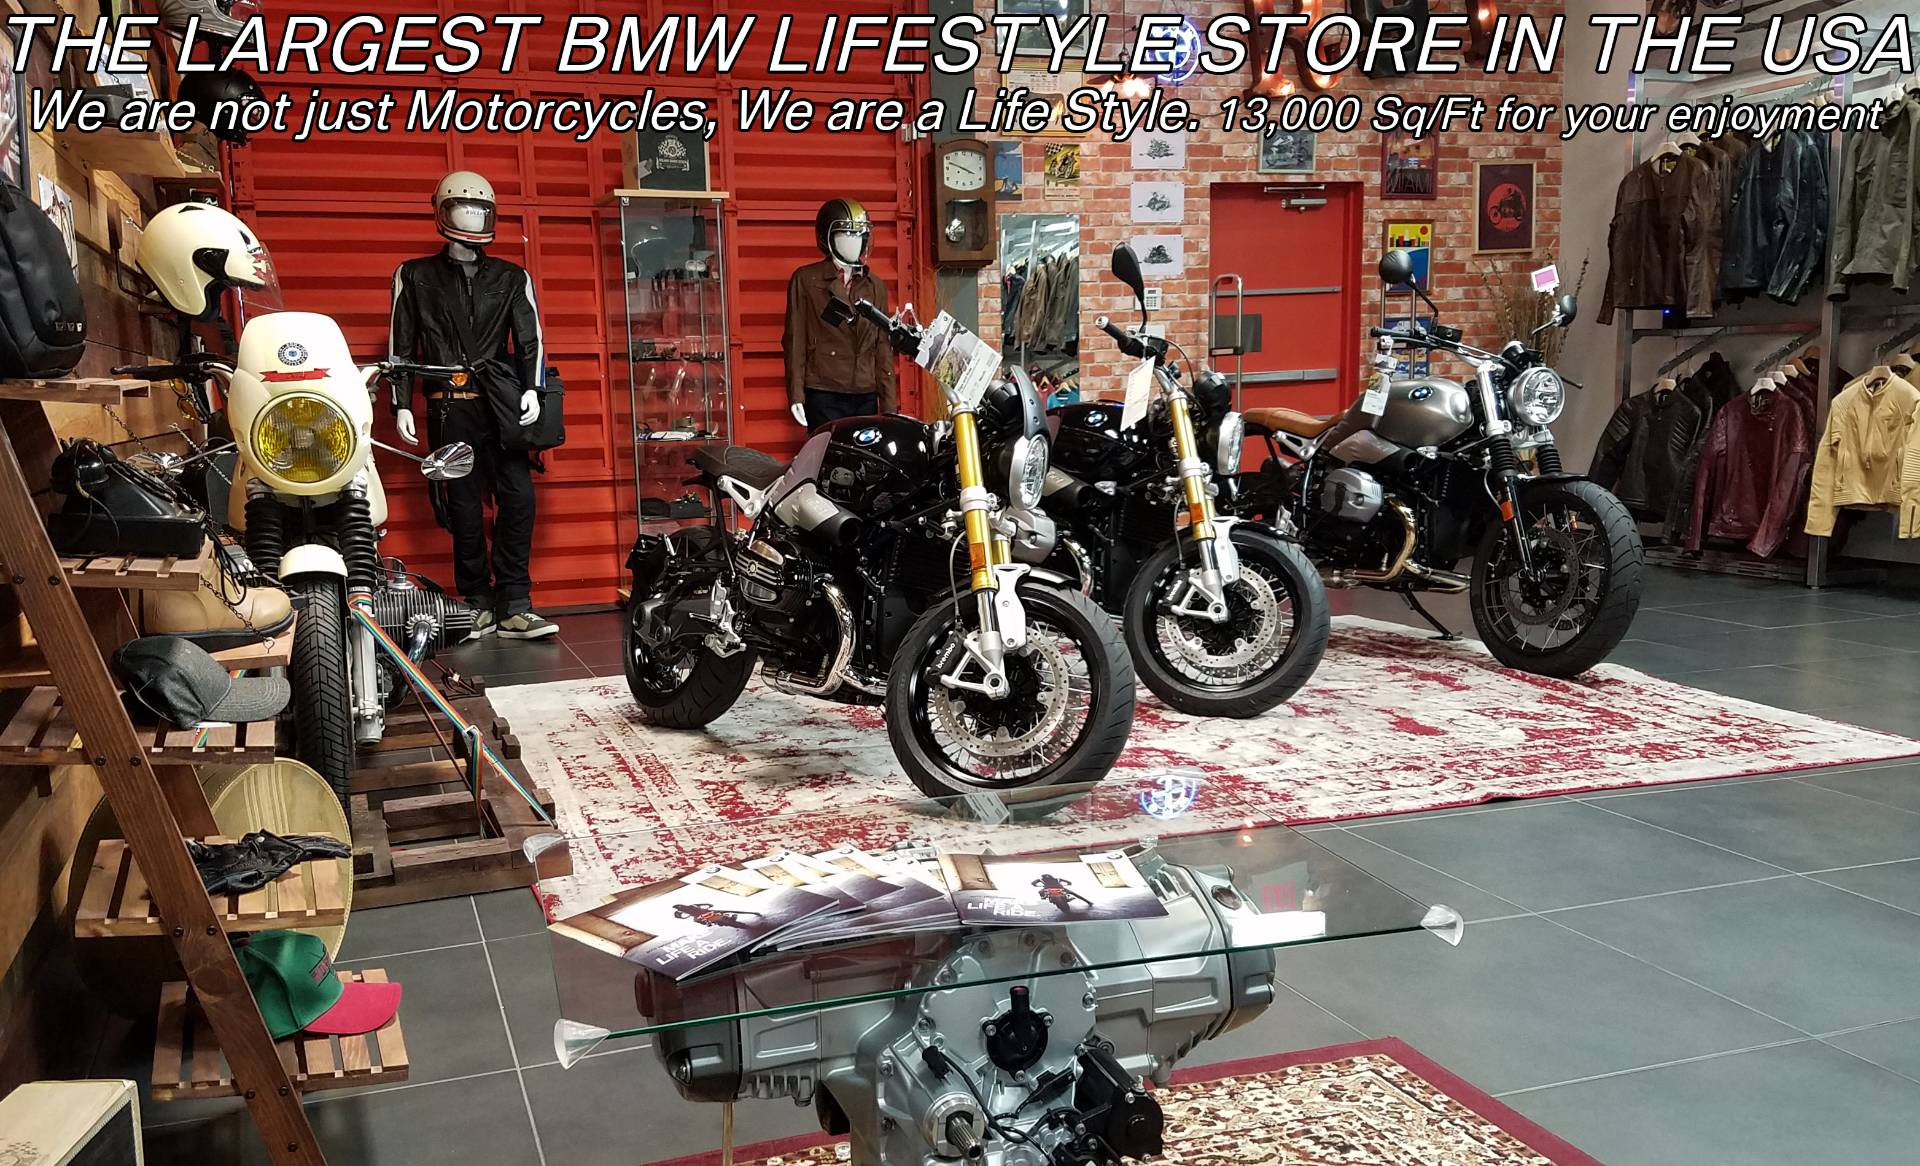 New 2019 BMW F 850 GSA for sale, BMW F 850GSA for sale, BMW Motorcycle F850GSA, new BMW 850 Adventure, Adventure. BMW Motorcycles of Miami, Motorcycles of Miami, Motorcycles Miami, New Motorcycles, Used Motorcycles, pre-owned. #BMWMotorcyclesOfMiami #MotorcyclesOfMiami #MotorcyclesMiami - Photo 35